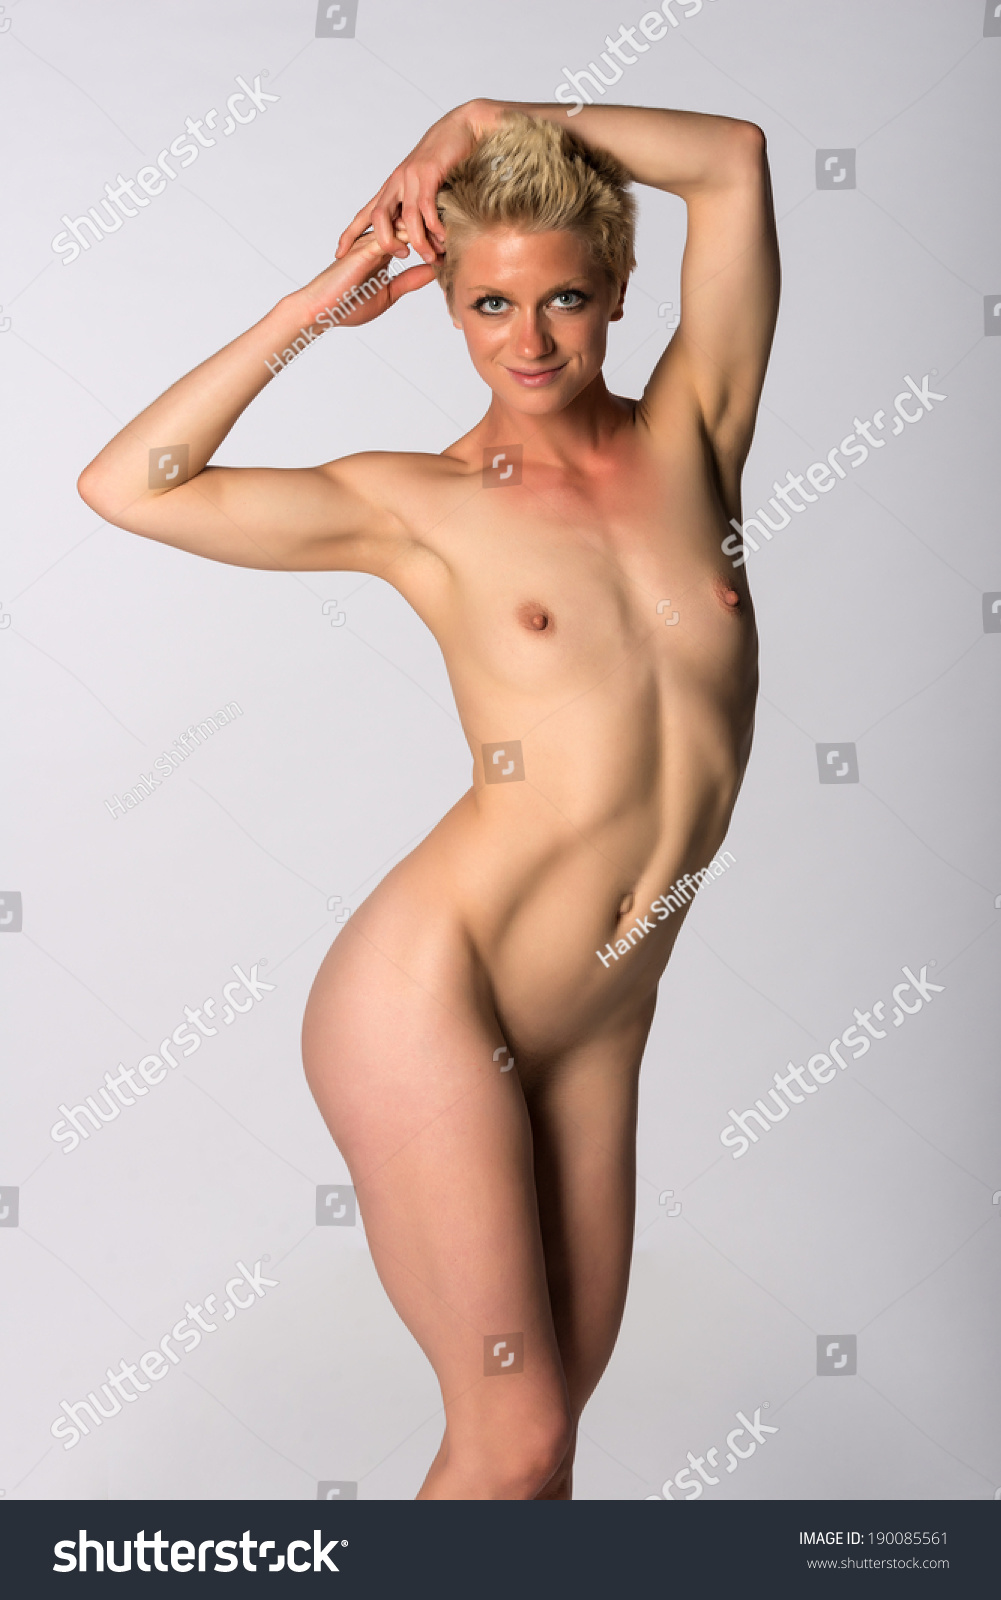 athletic woman nude Pretty athletic blonde woman nude on gray